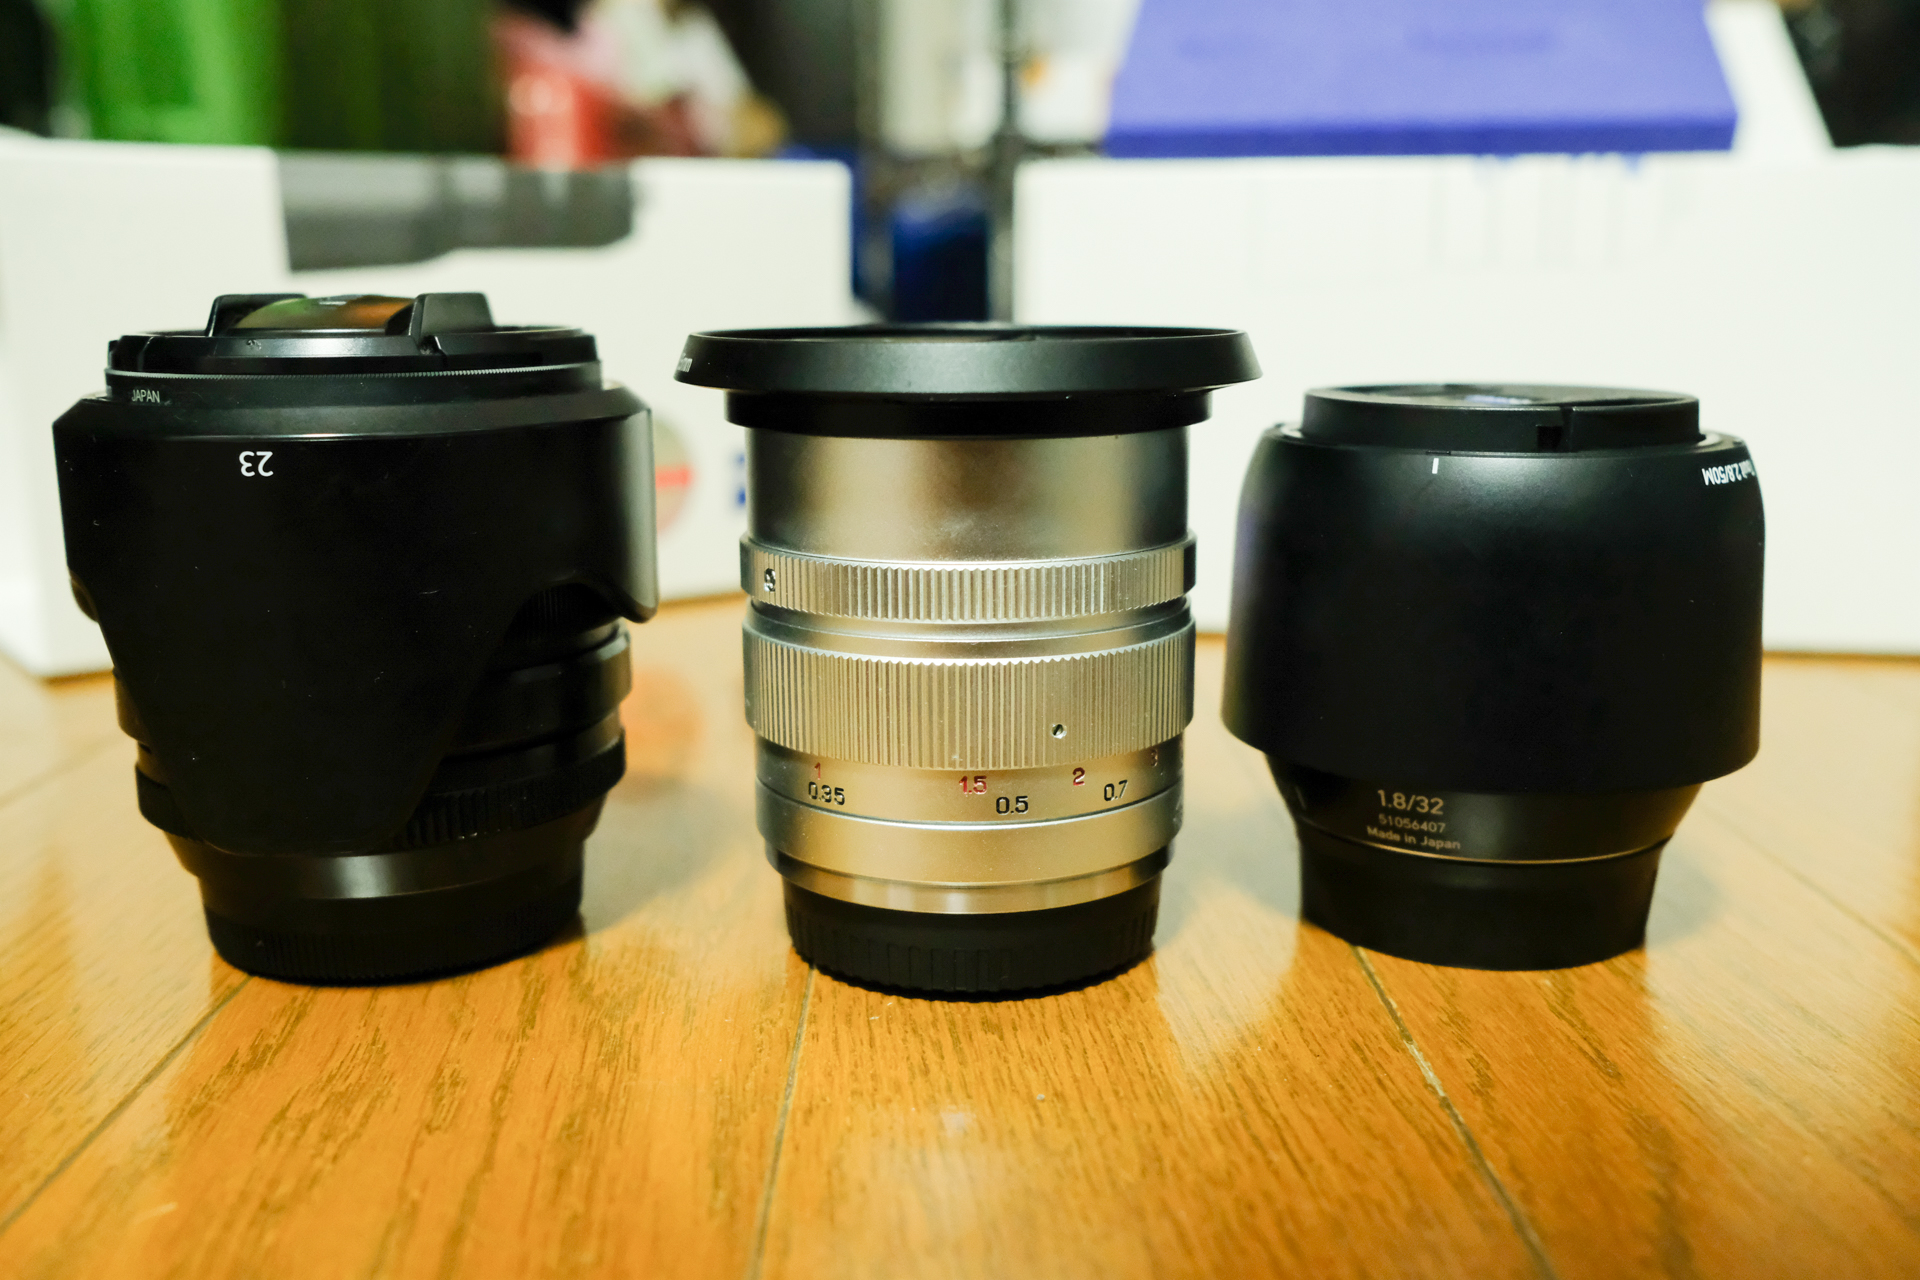 Carl Zeiss (カールツァイス) Touit 32mm F1.8